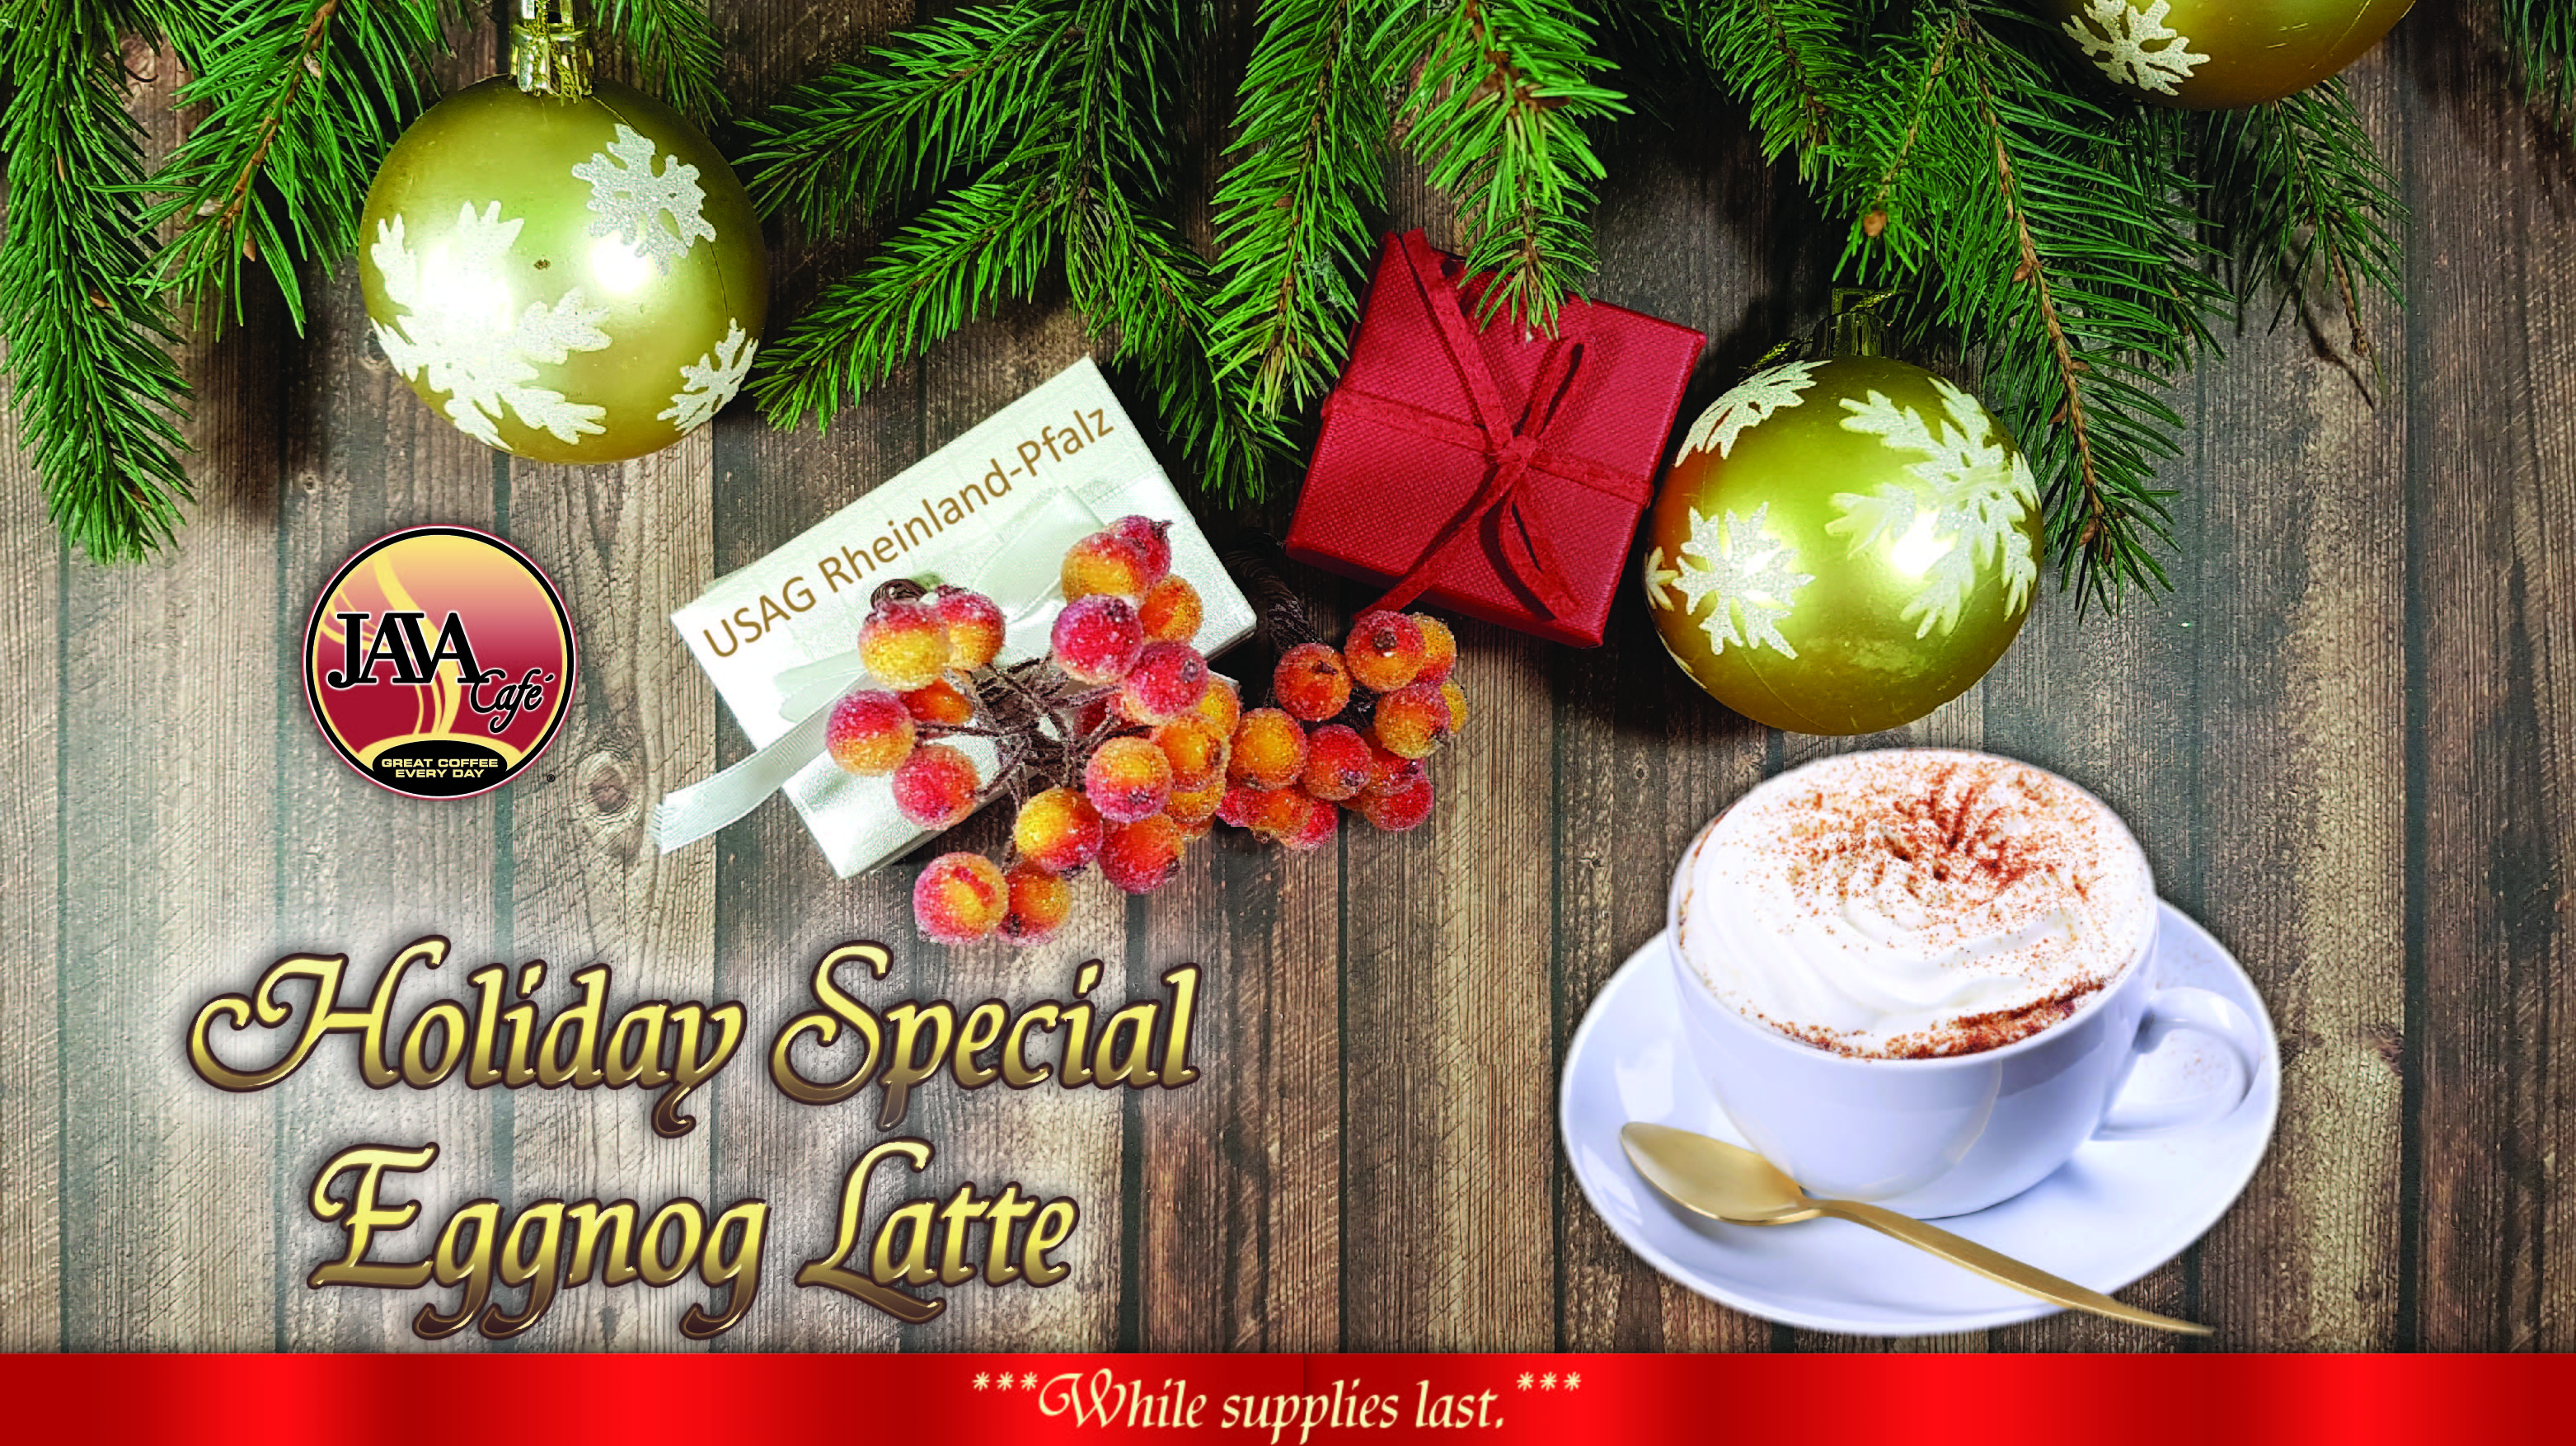 Java Cafe Holiday Special